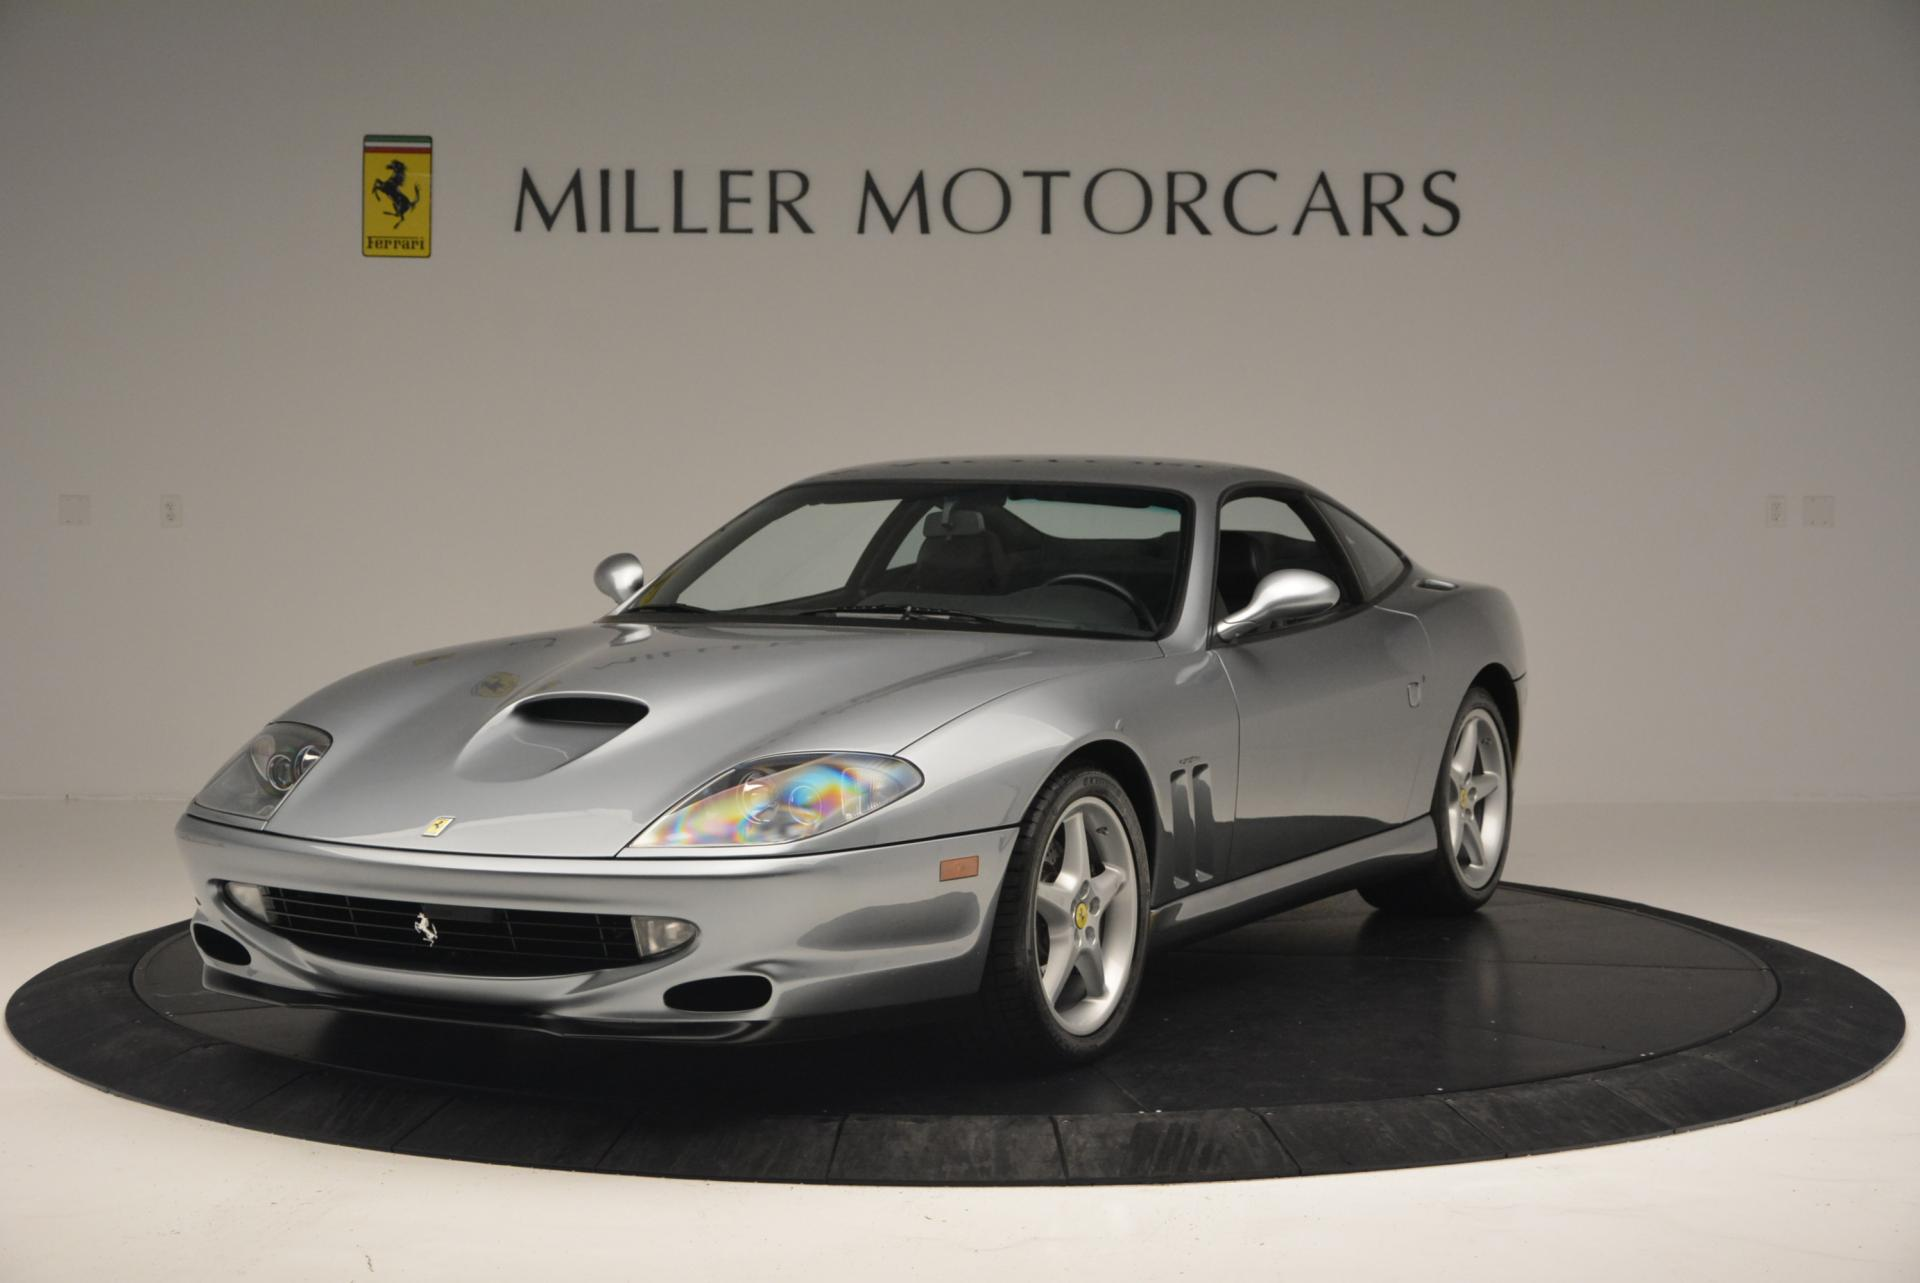 Used 1997 Ferrari 550 Maranello for sale Sold at Aston Martin of Greenwich in Greenwich CT 06830 1